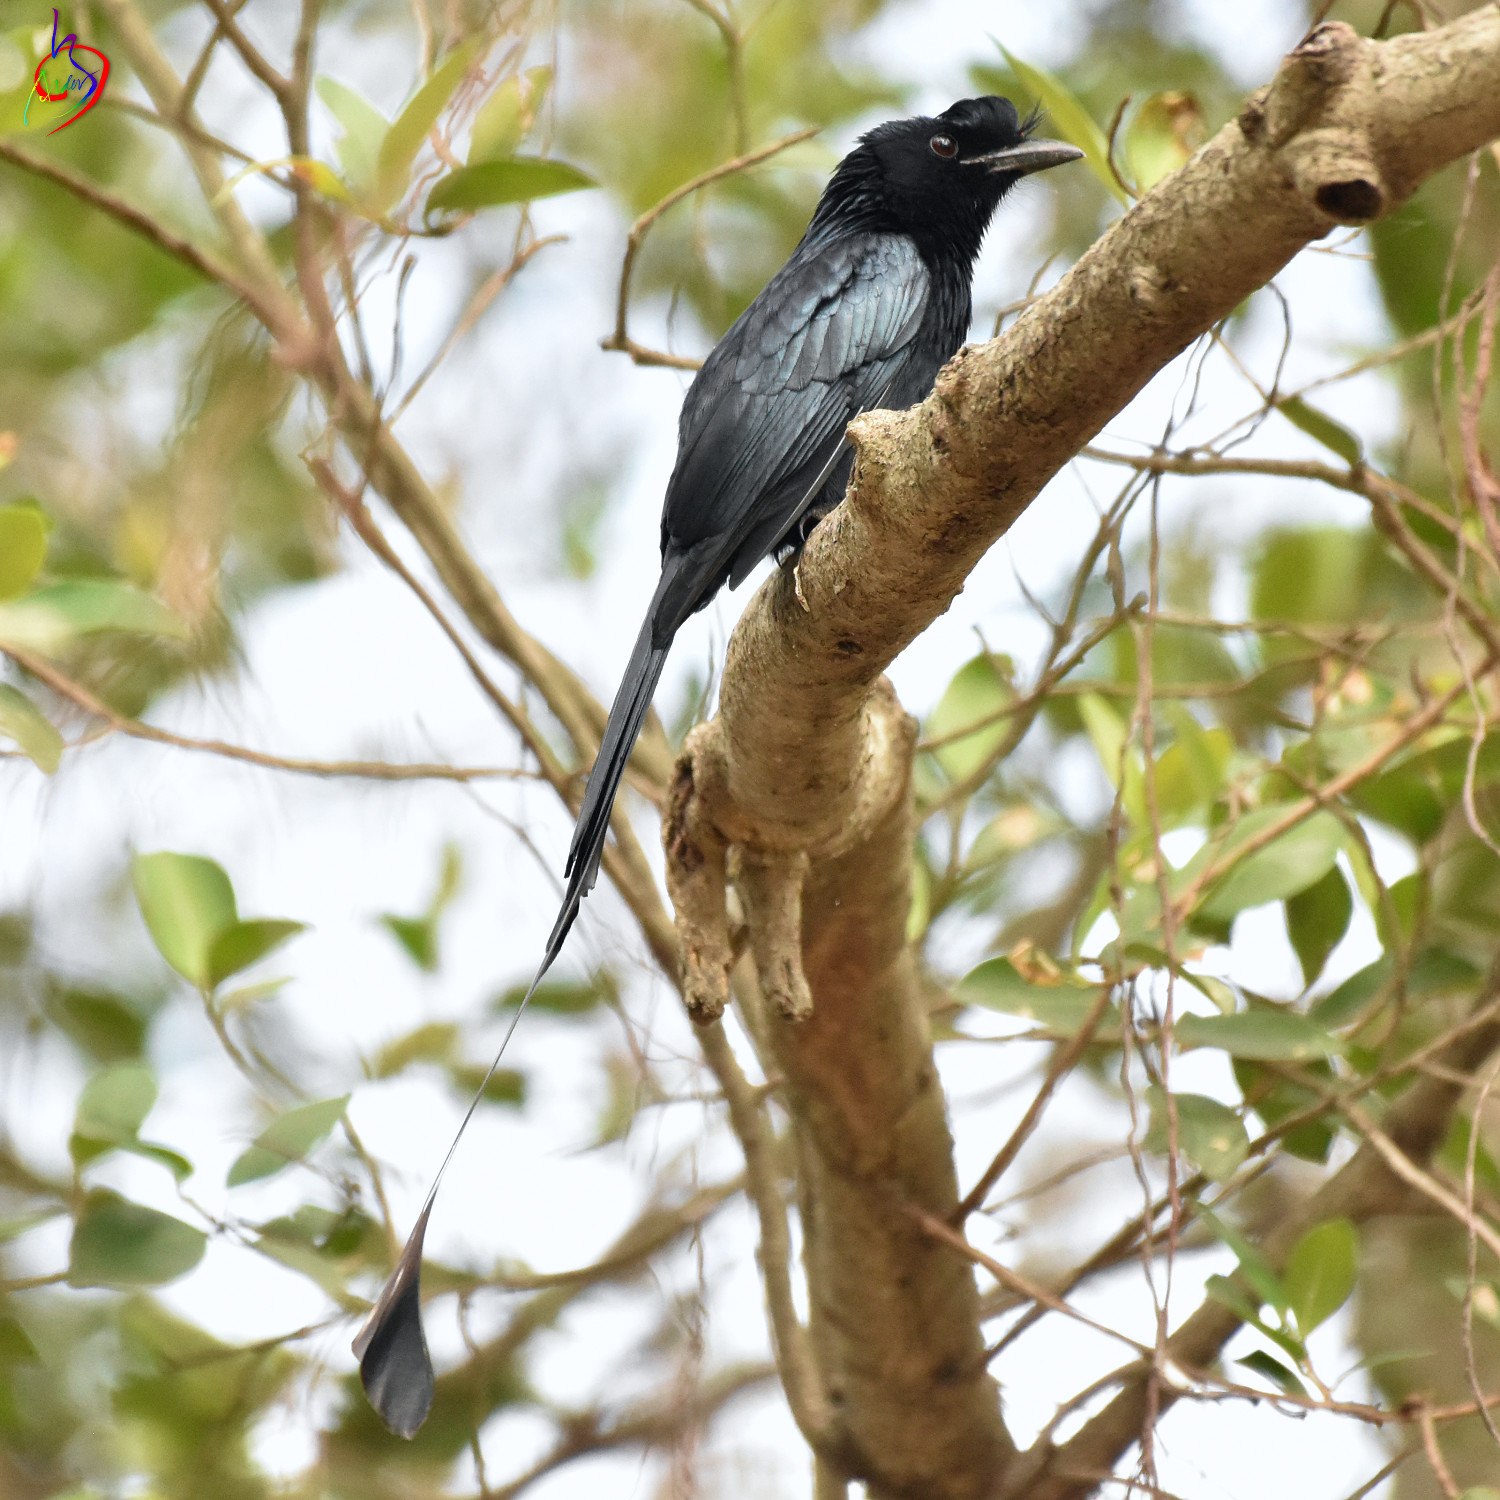 Greater_Racket-tailed_Drongo_3492